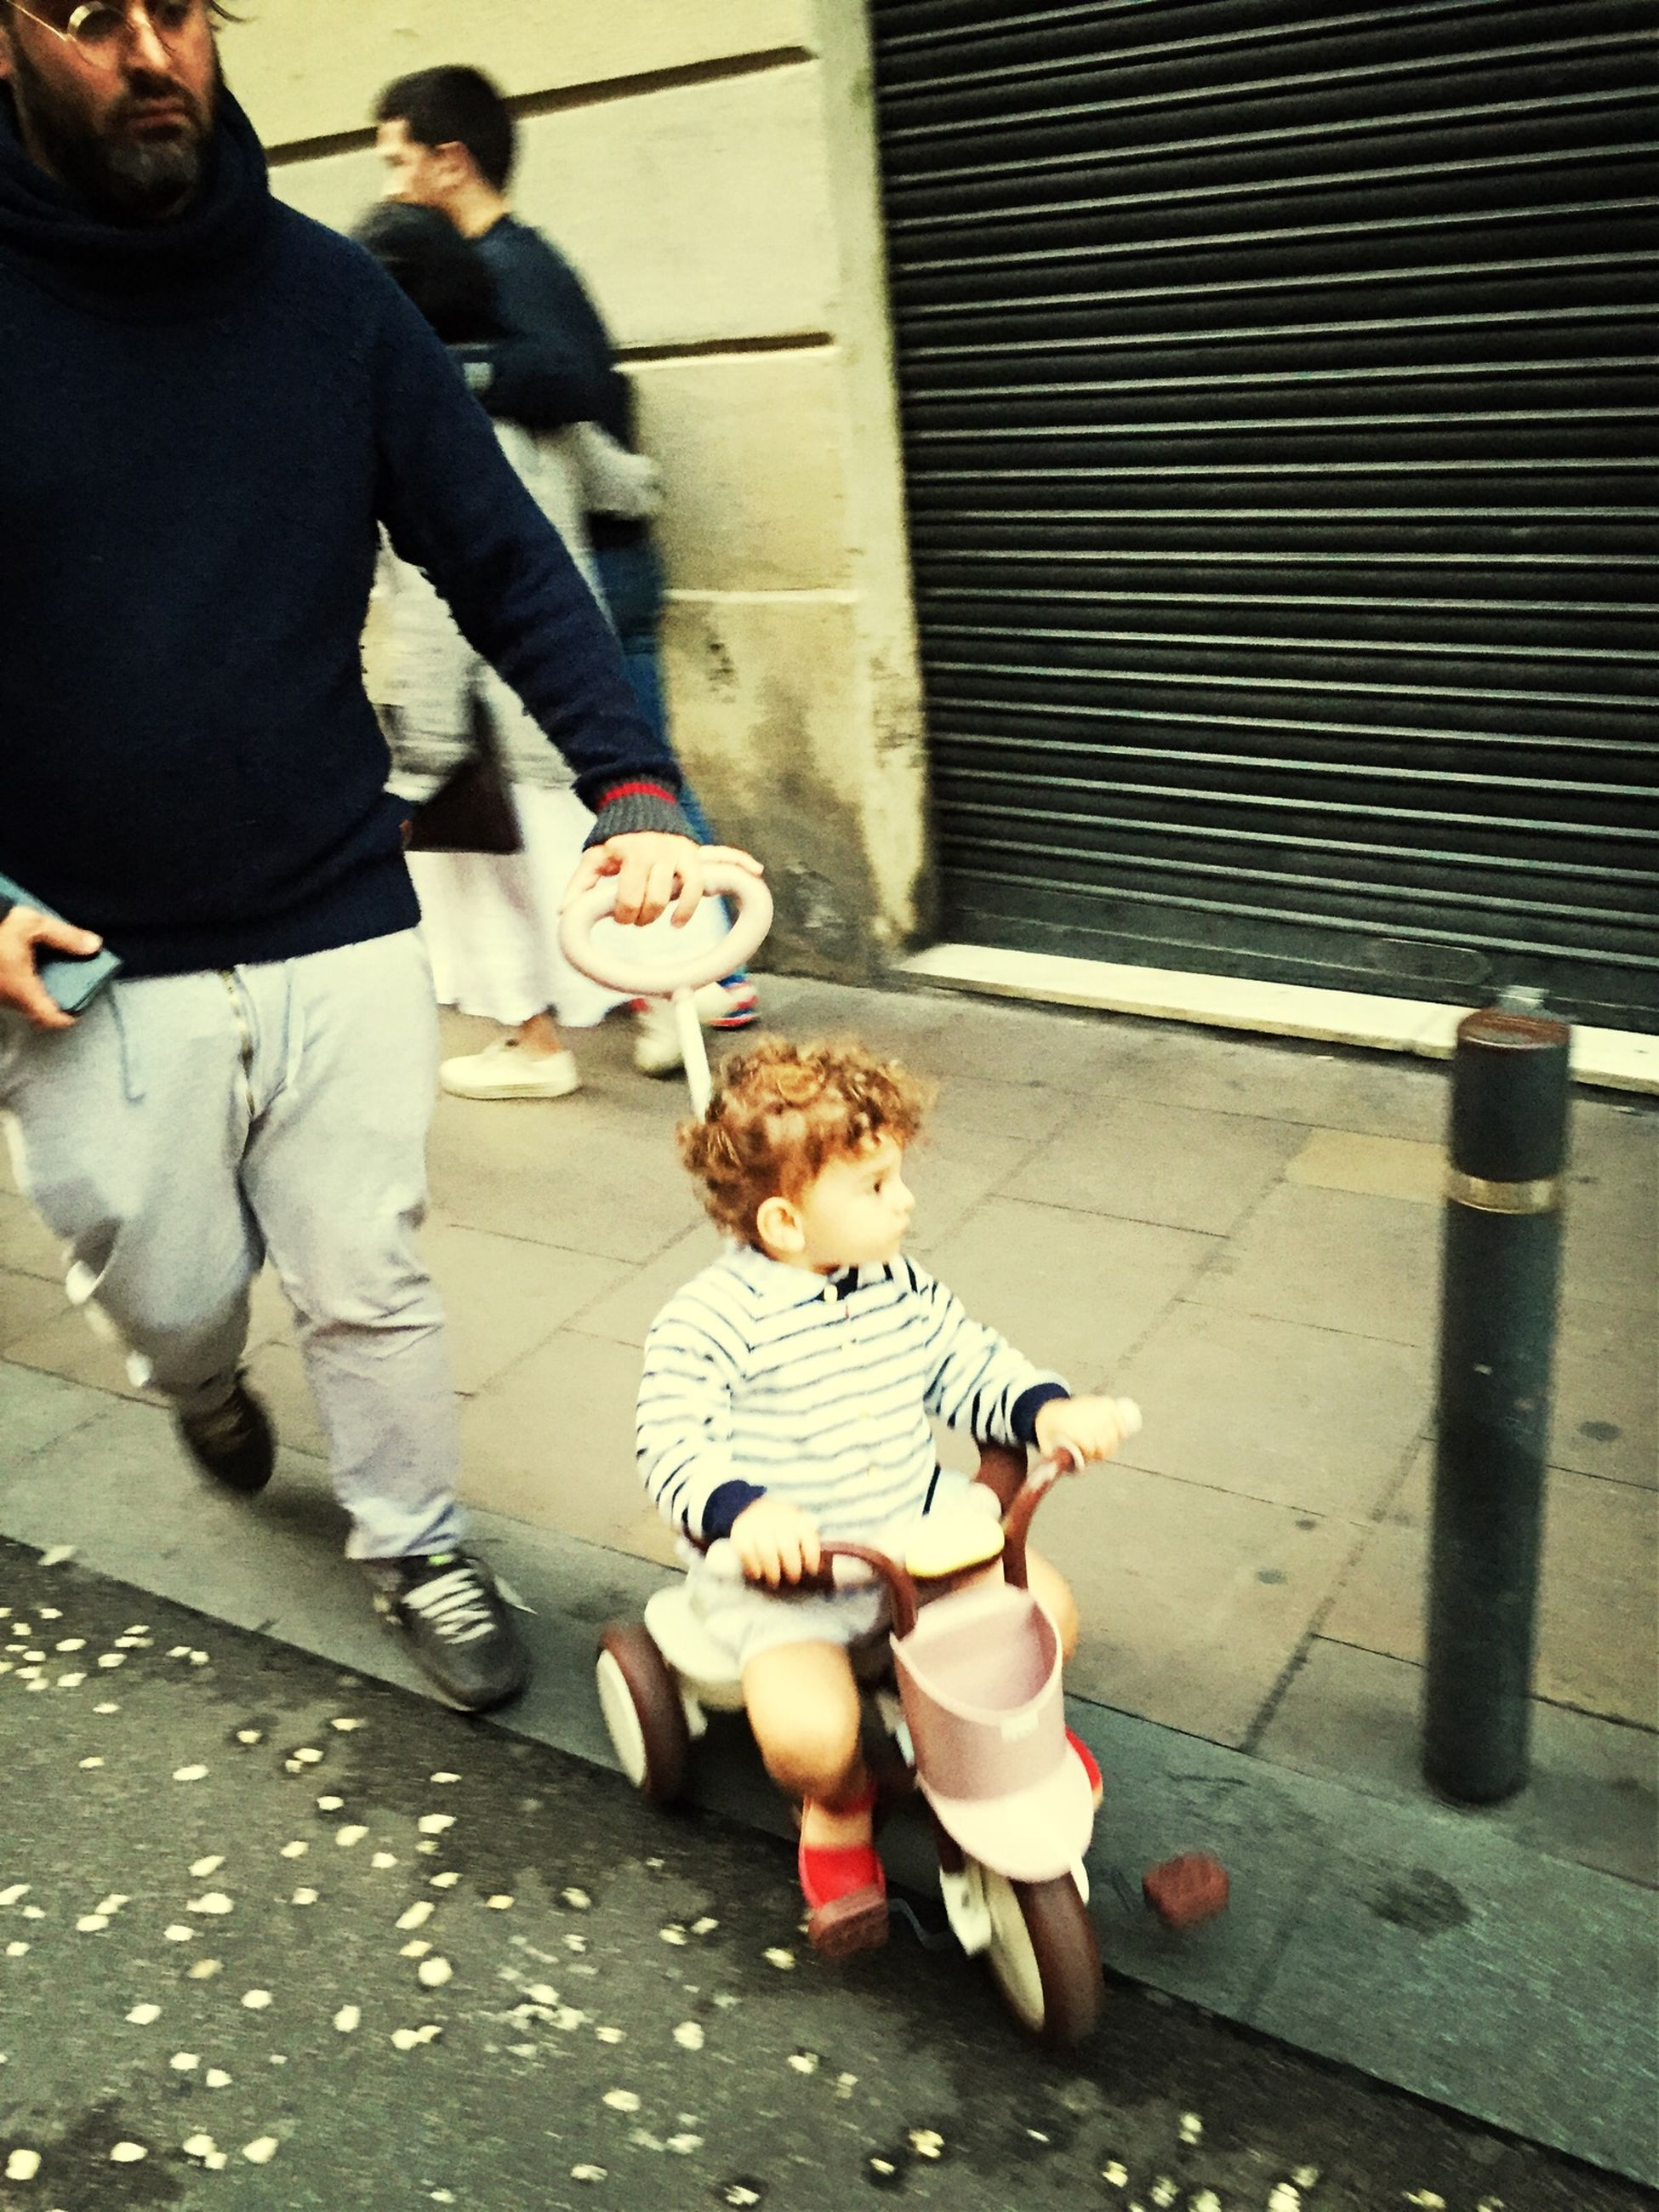 lifestyles, casual clothing, street, leisure activity, full length, togetherness, men, holding, childhood, animal themes, person, sitting, standing, walking, food and drink, boys, elementary age